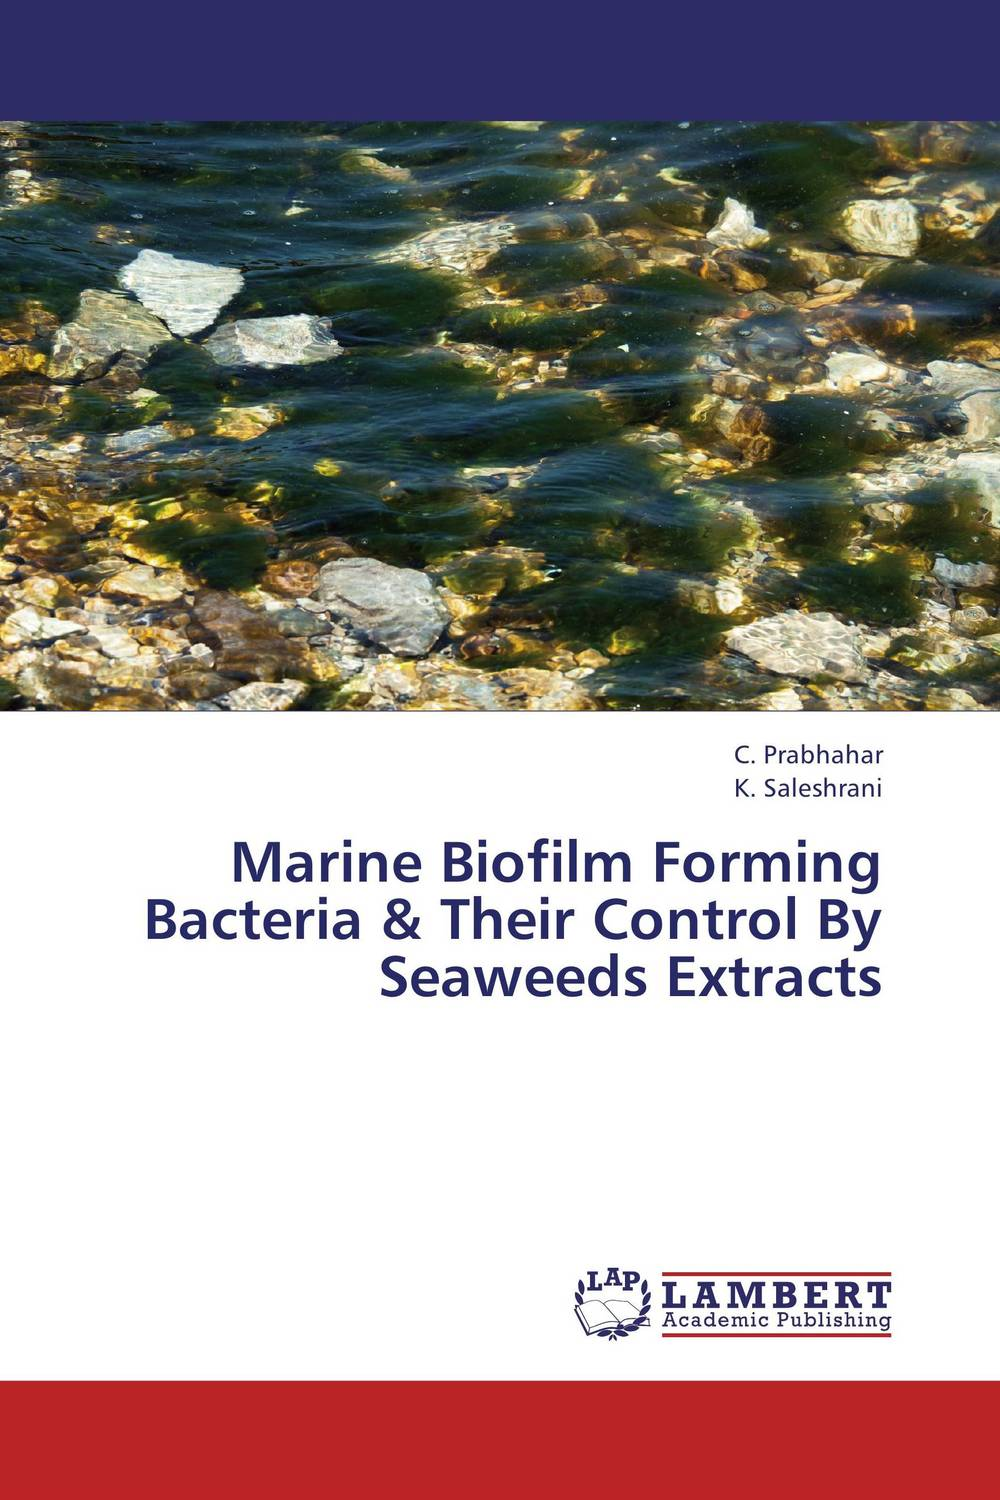 Marine Biofilm Forming Bacteria & Their Control By Seaweeds Extracts rakesh singh amit kumar singh and g k garg cloning of glna from bacillus brevis